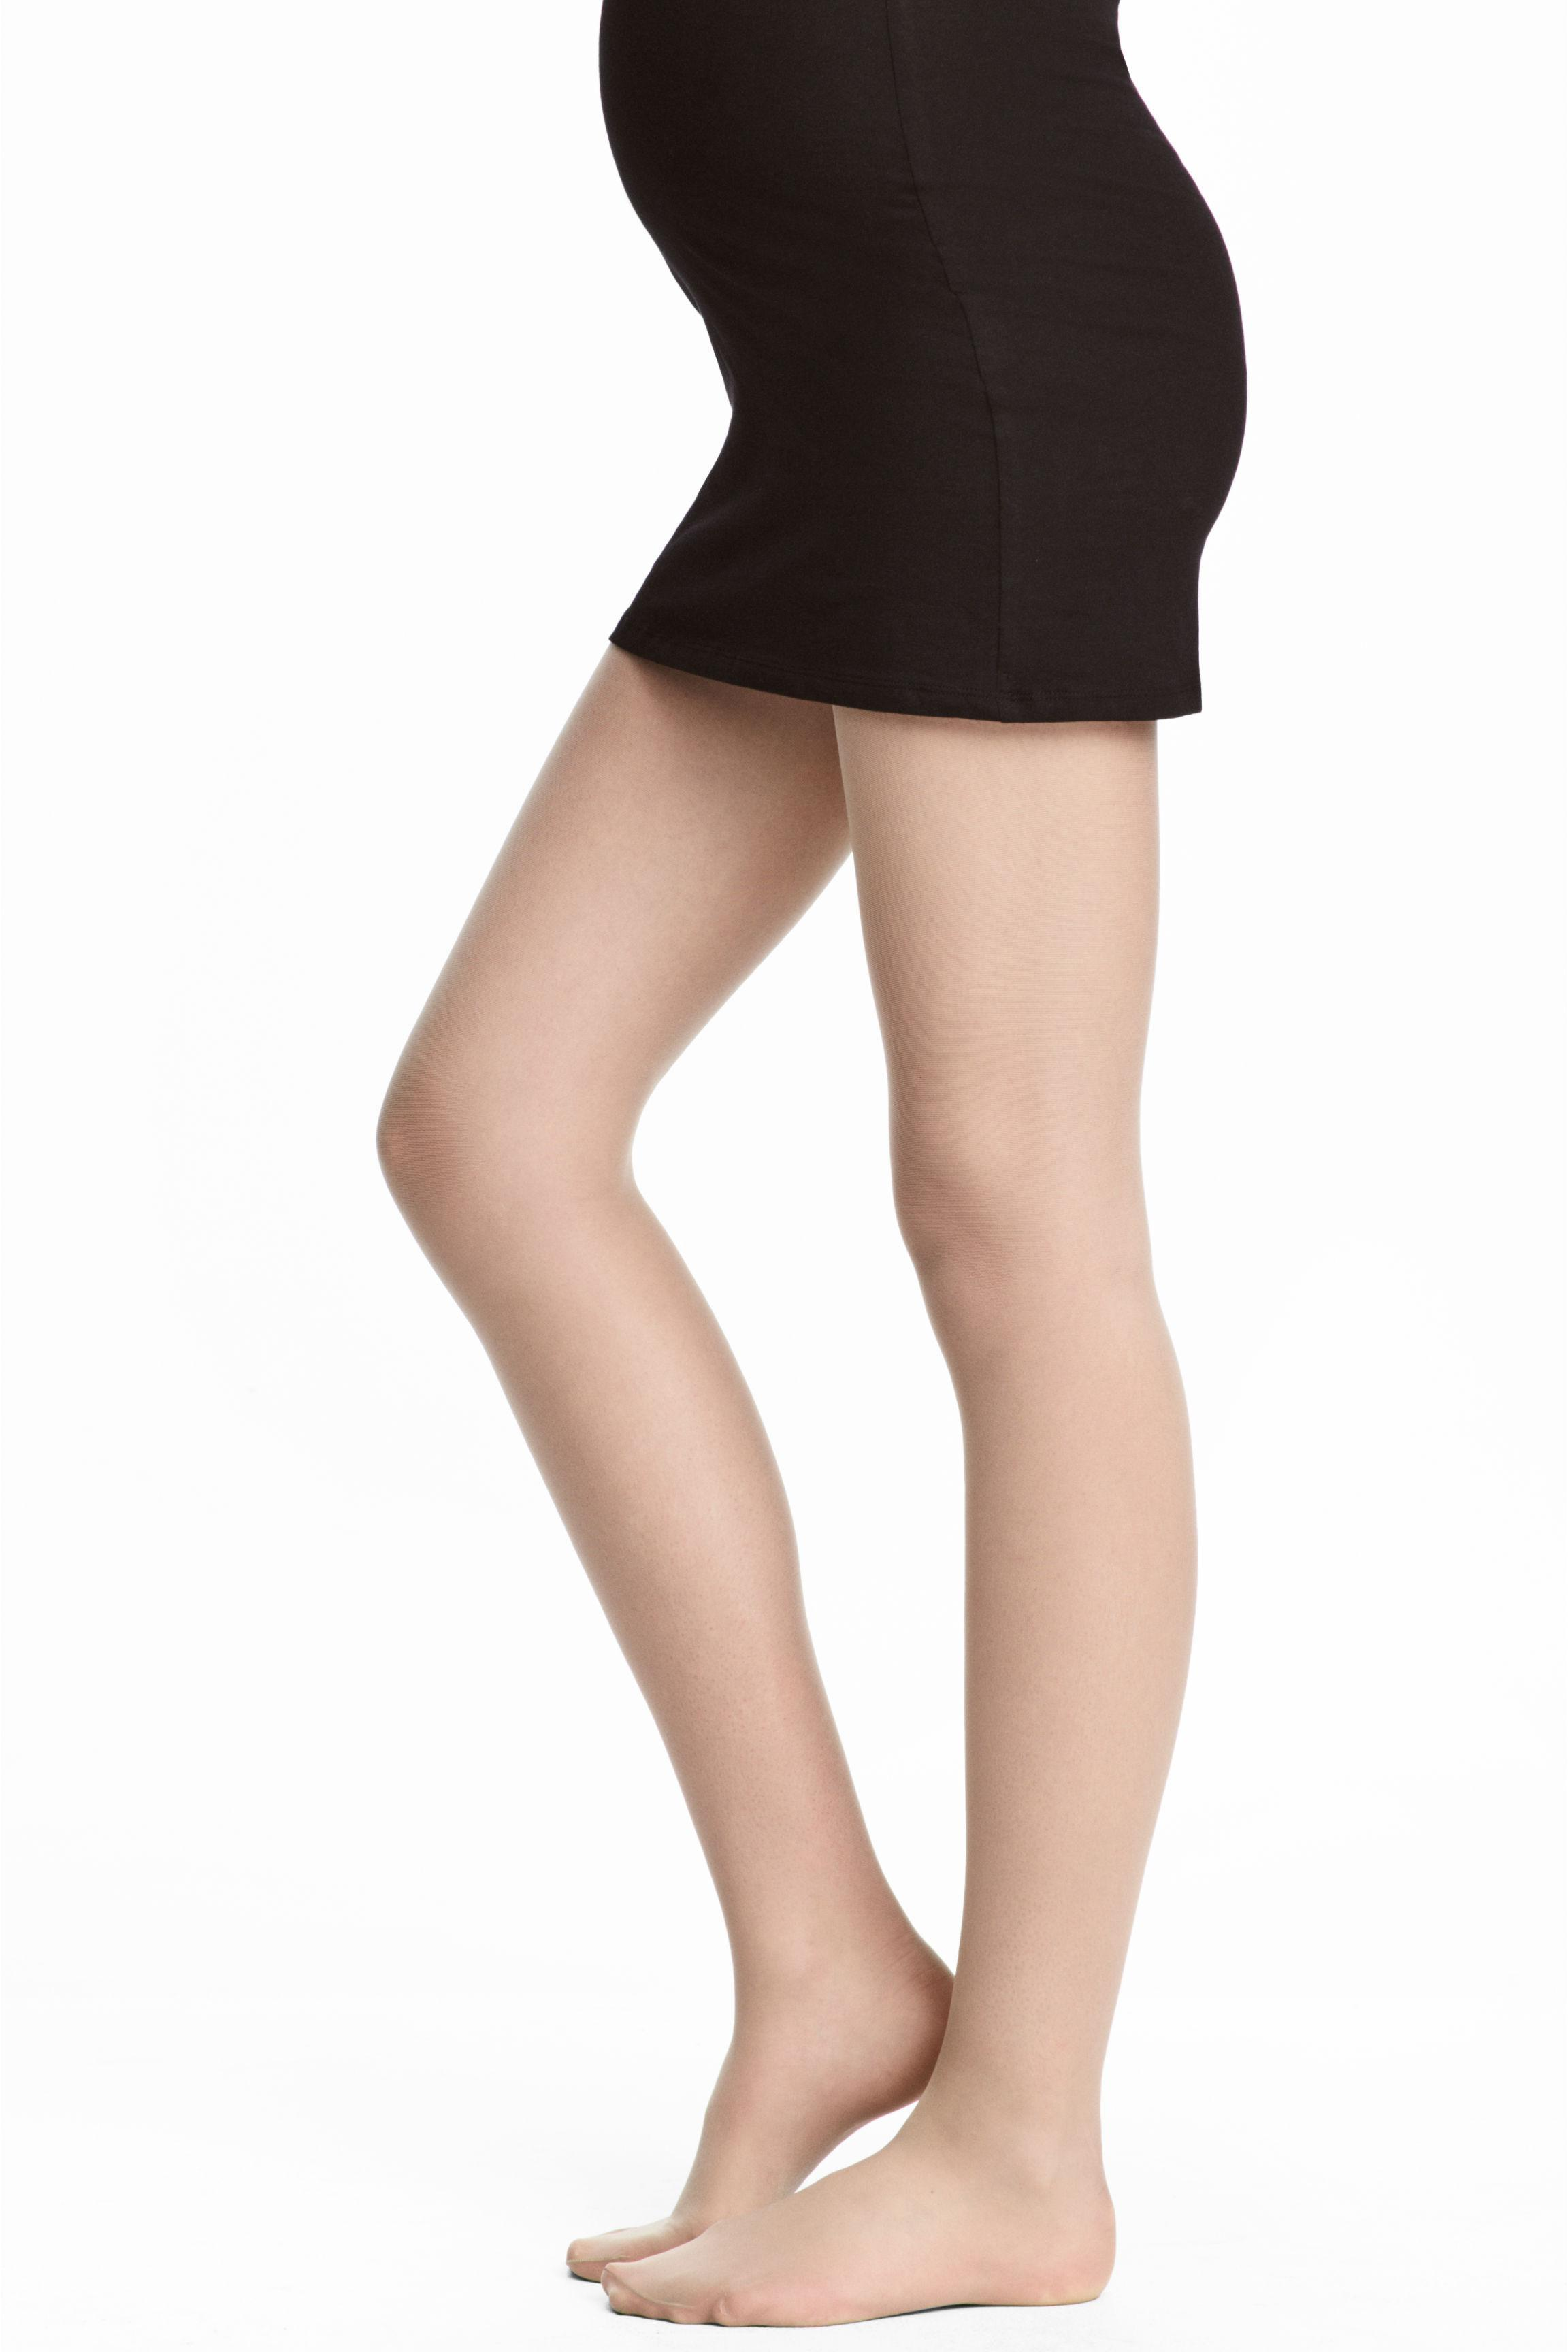 b51d1a23b H M Mama Support Tights 30 Denier in Natural - Lyst